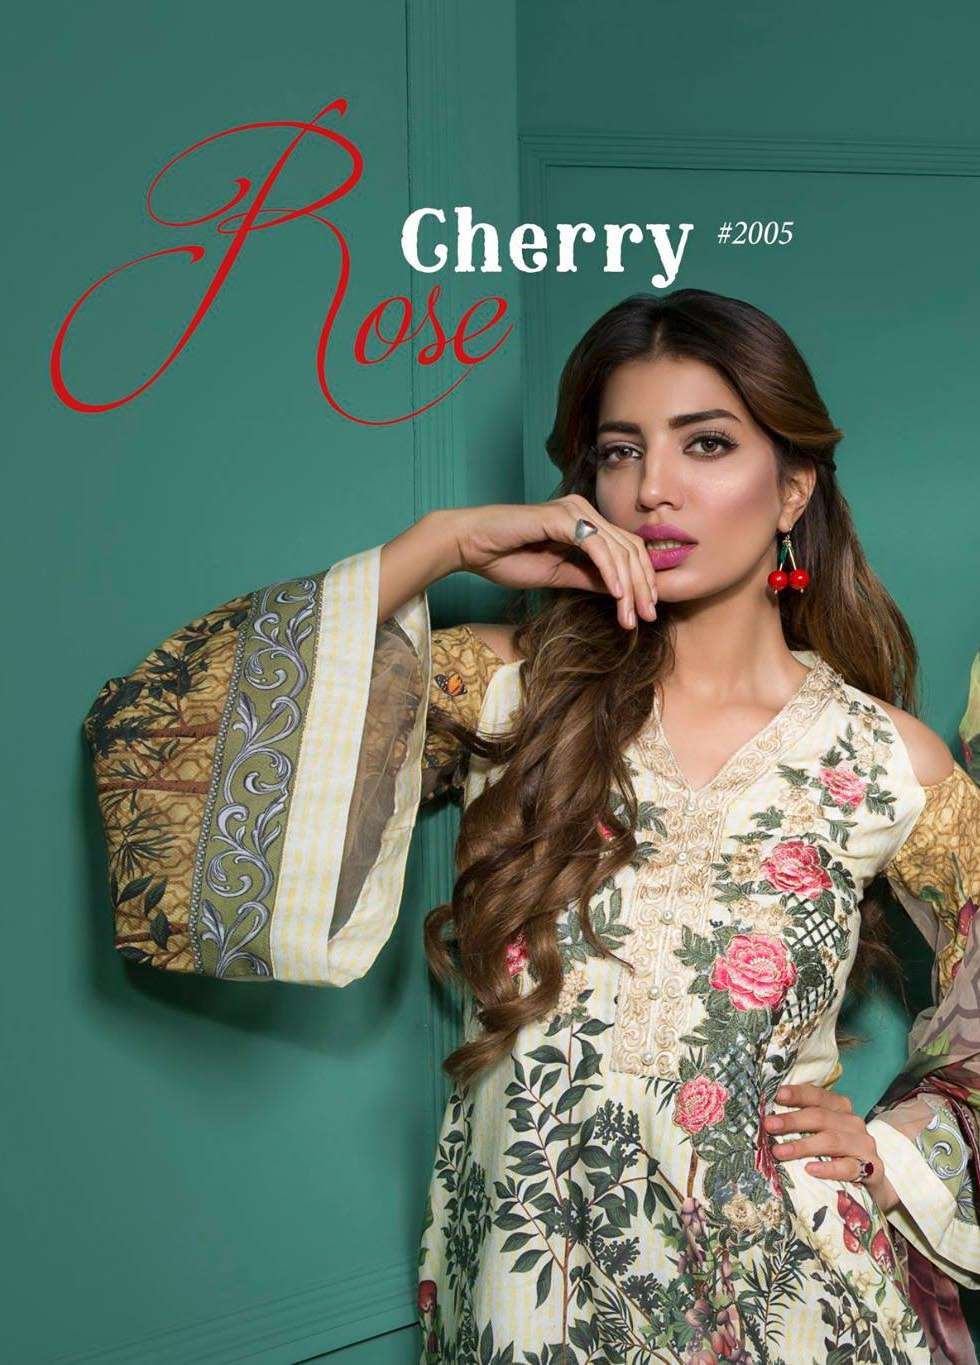 Rang Rasiya Embroidered Lawn Unstitched 3 Piece Suit RGR17E3 Gerry Rose A